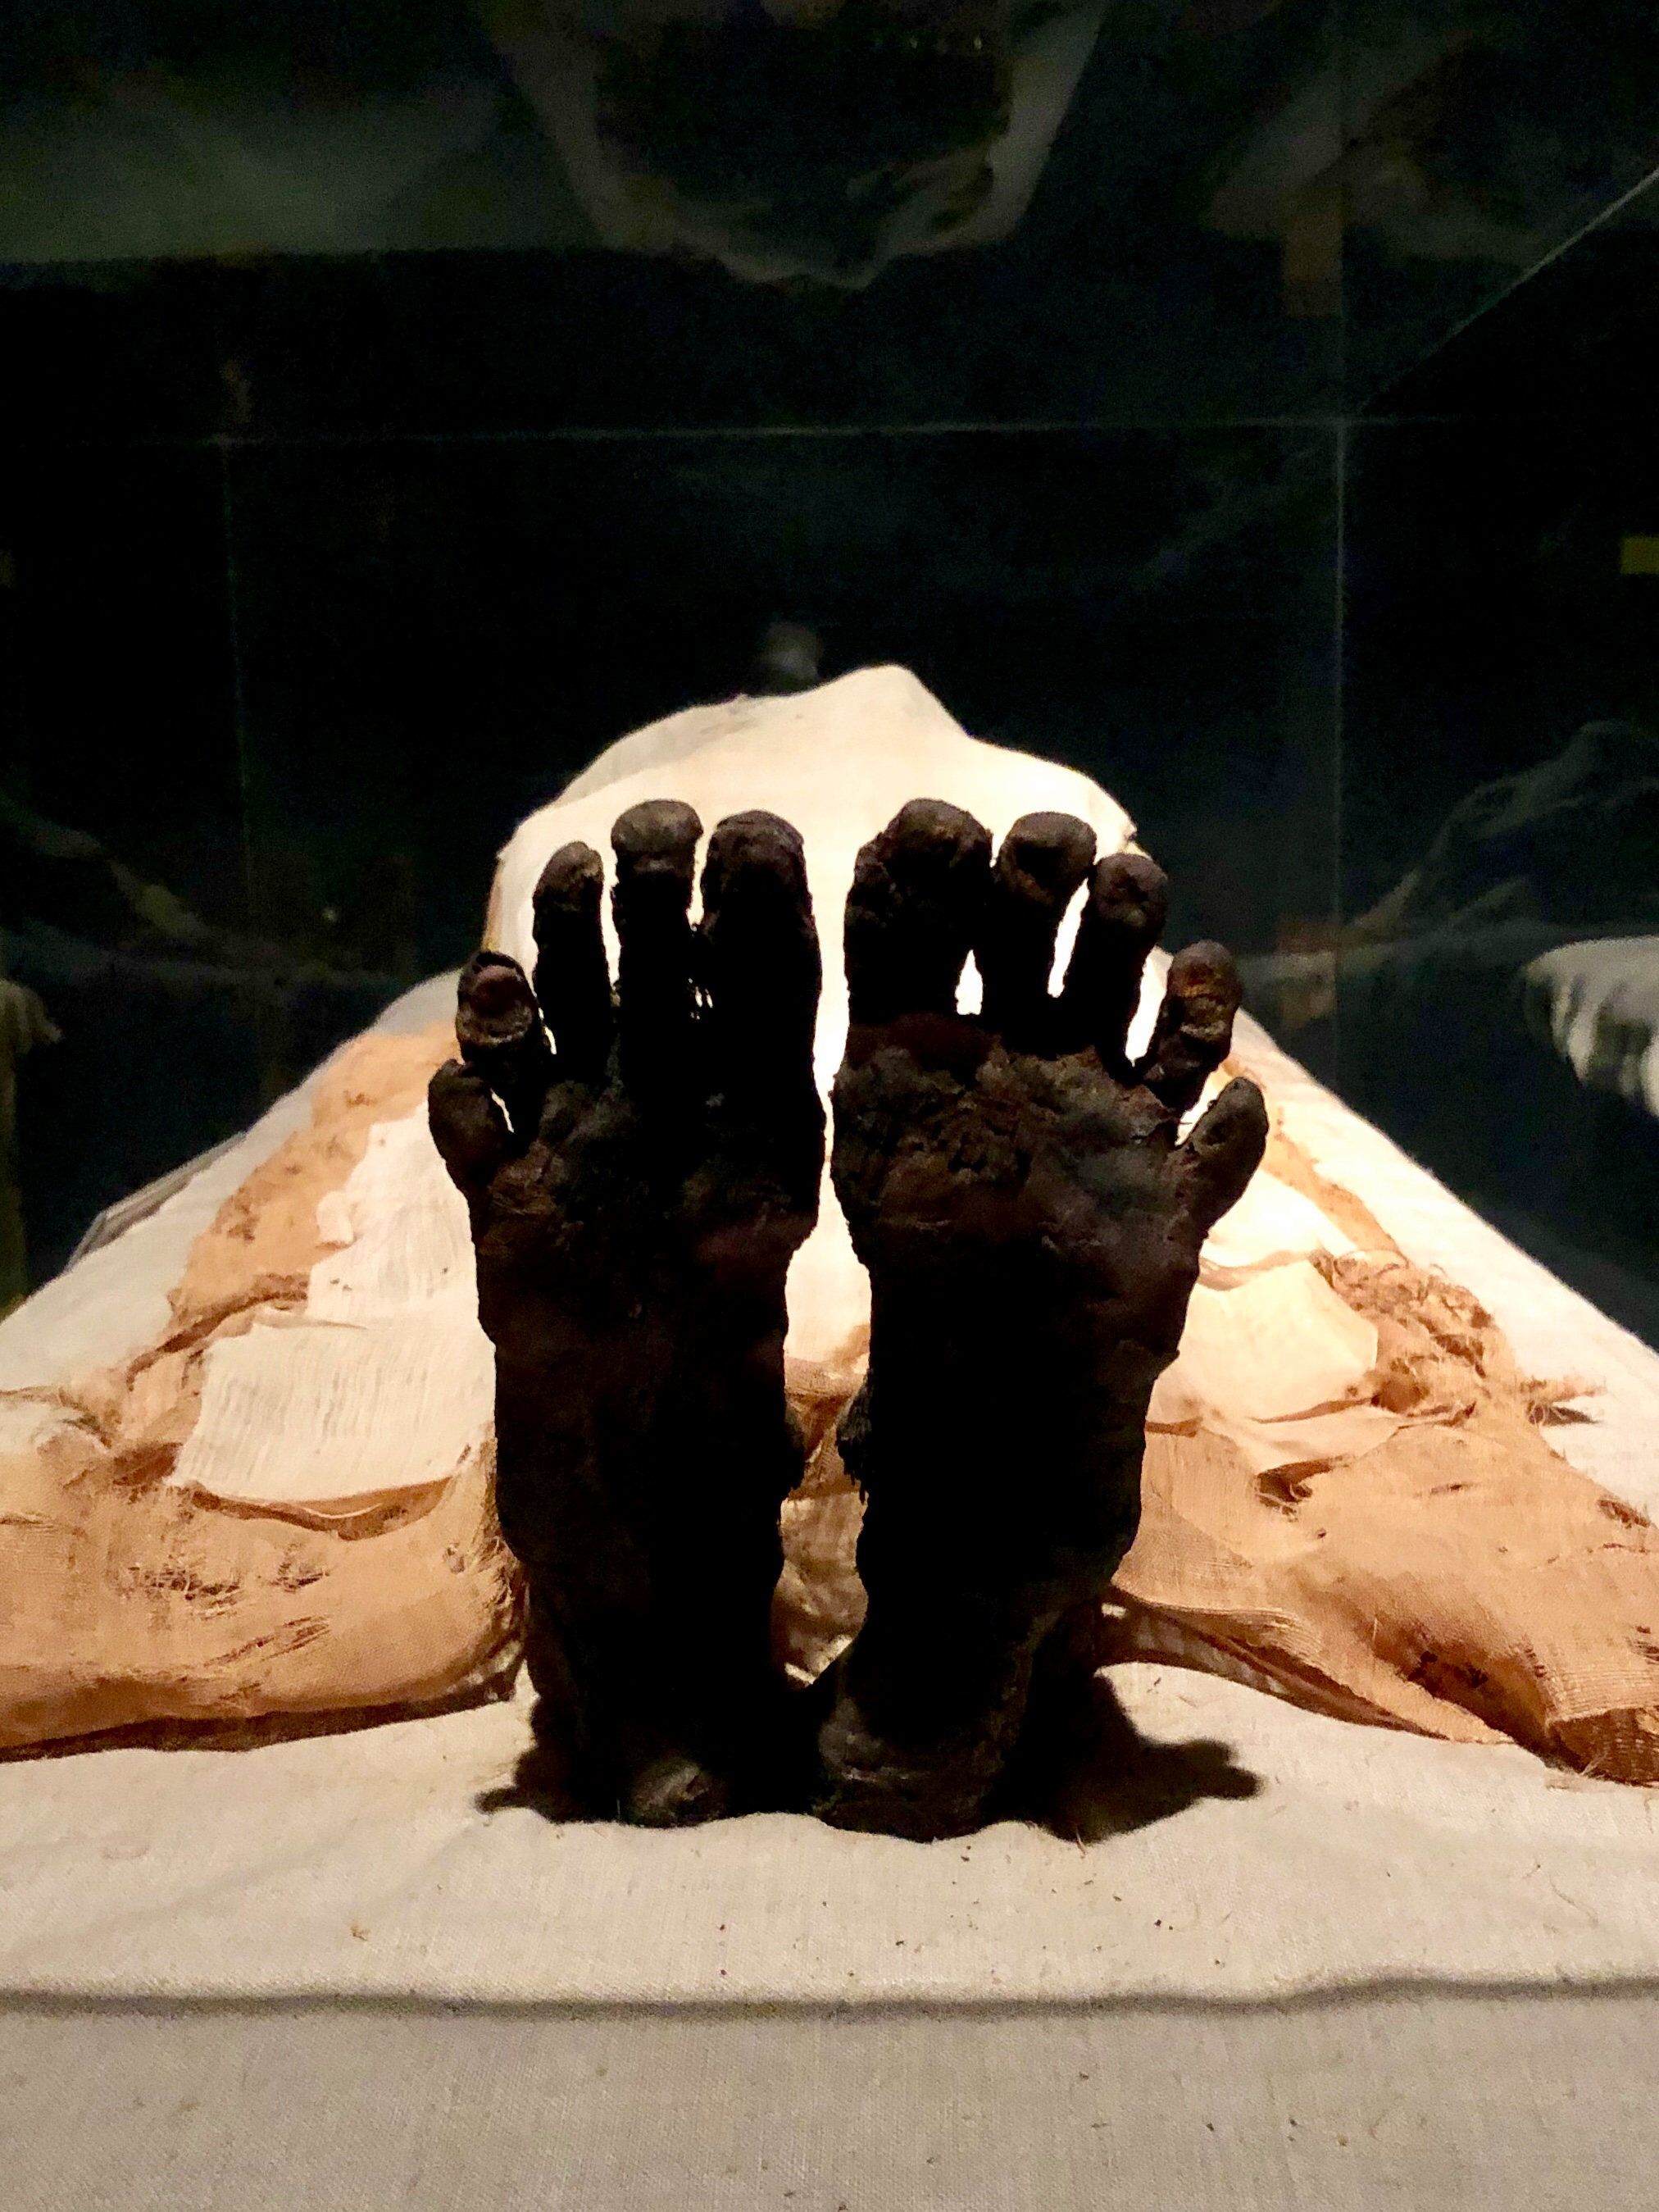 The creepy, dried-up feet of Ramesses I. The mummy was part of a small museum collection in Niagara Falls, Canada before being returned to Egypt in 2003